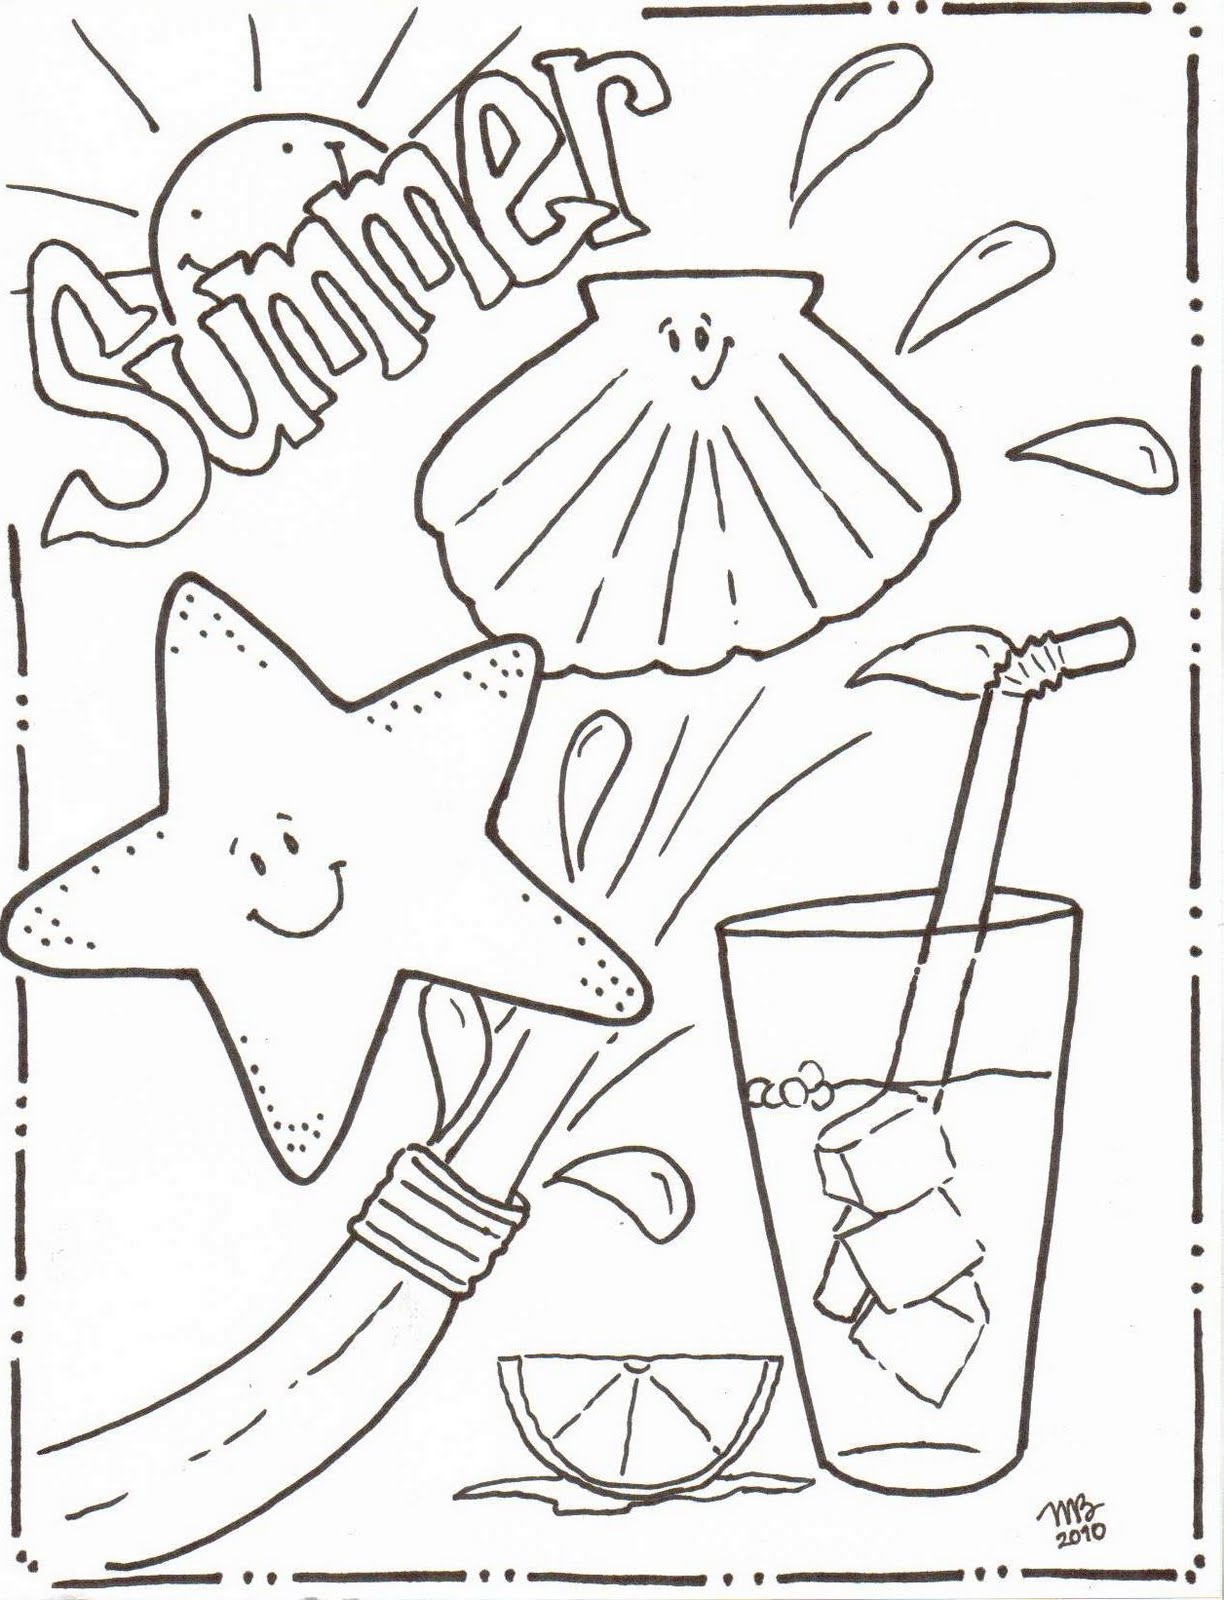 summer coloring pages to download and print for free - Summer Coloring Page